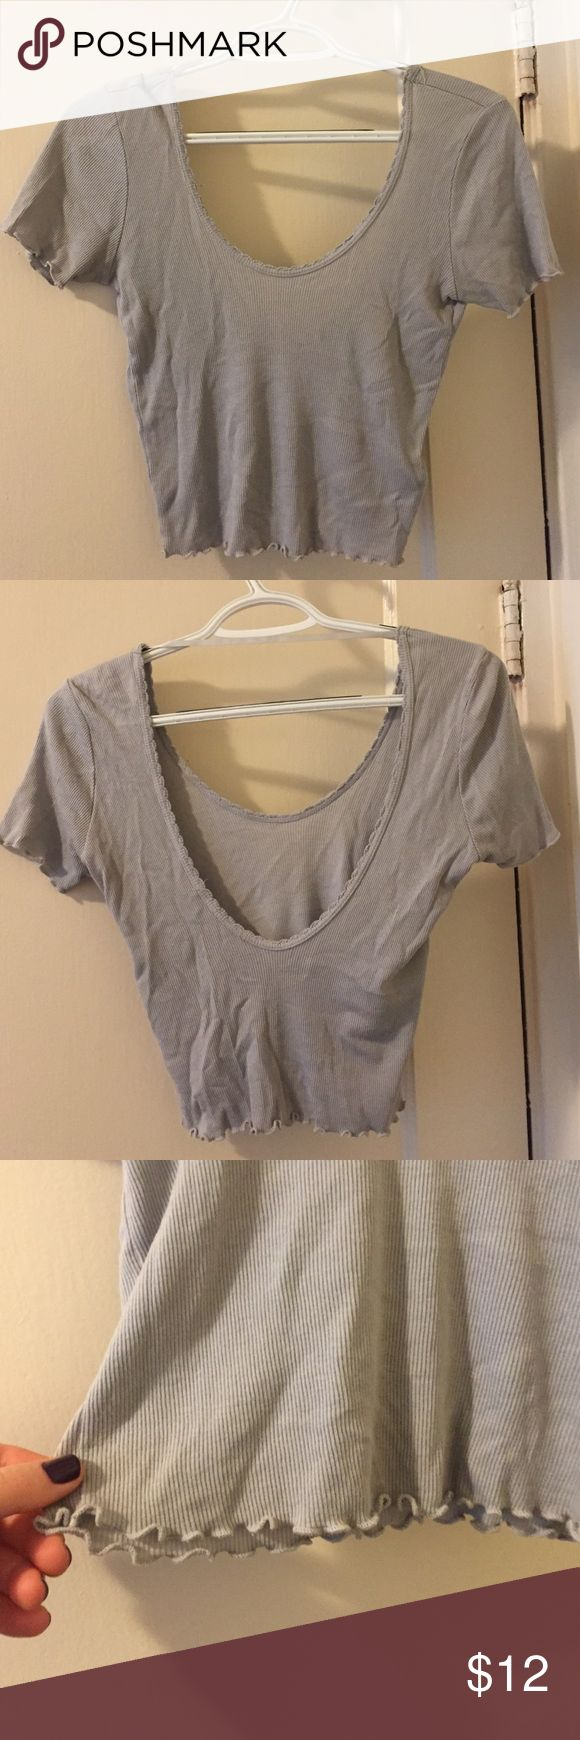 Super cute petite Crop Top Low hanging backside, strap on the top so it doesn't fall down your shoulders, ruffles on the bottom and on the arms and a cute embroidery for the neck/back lining, Gray-blue color but more to the gray side Tops